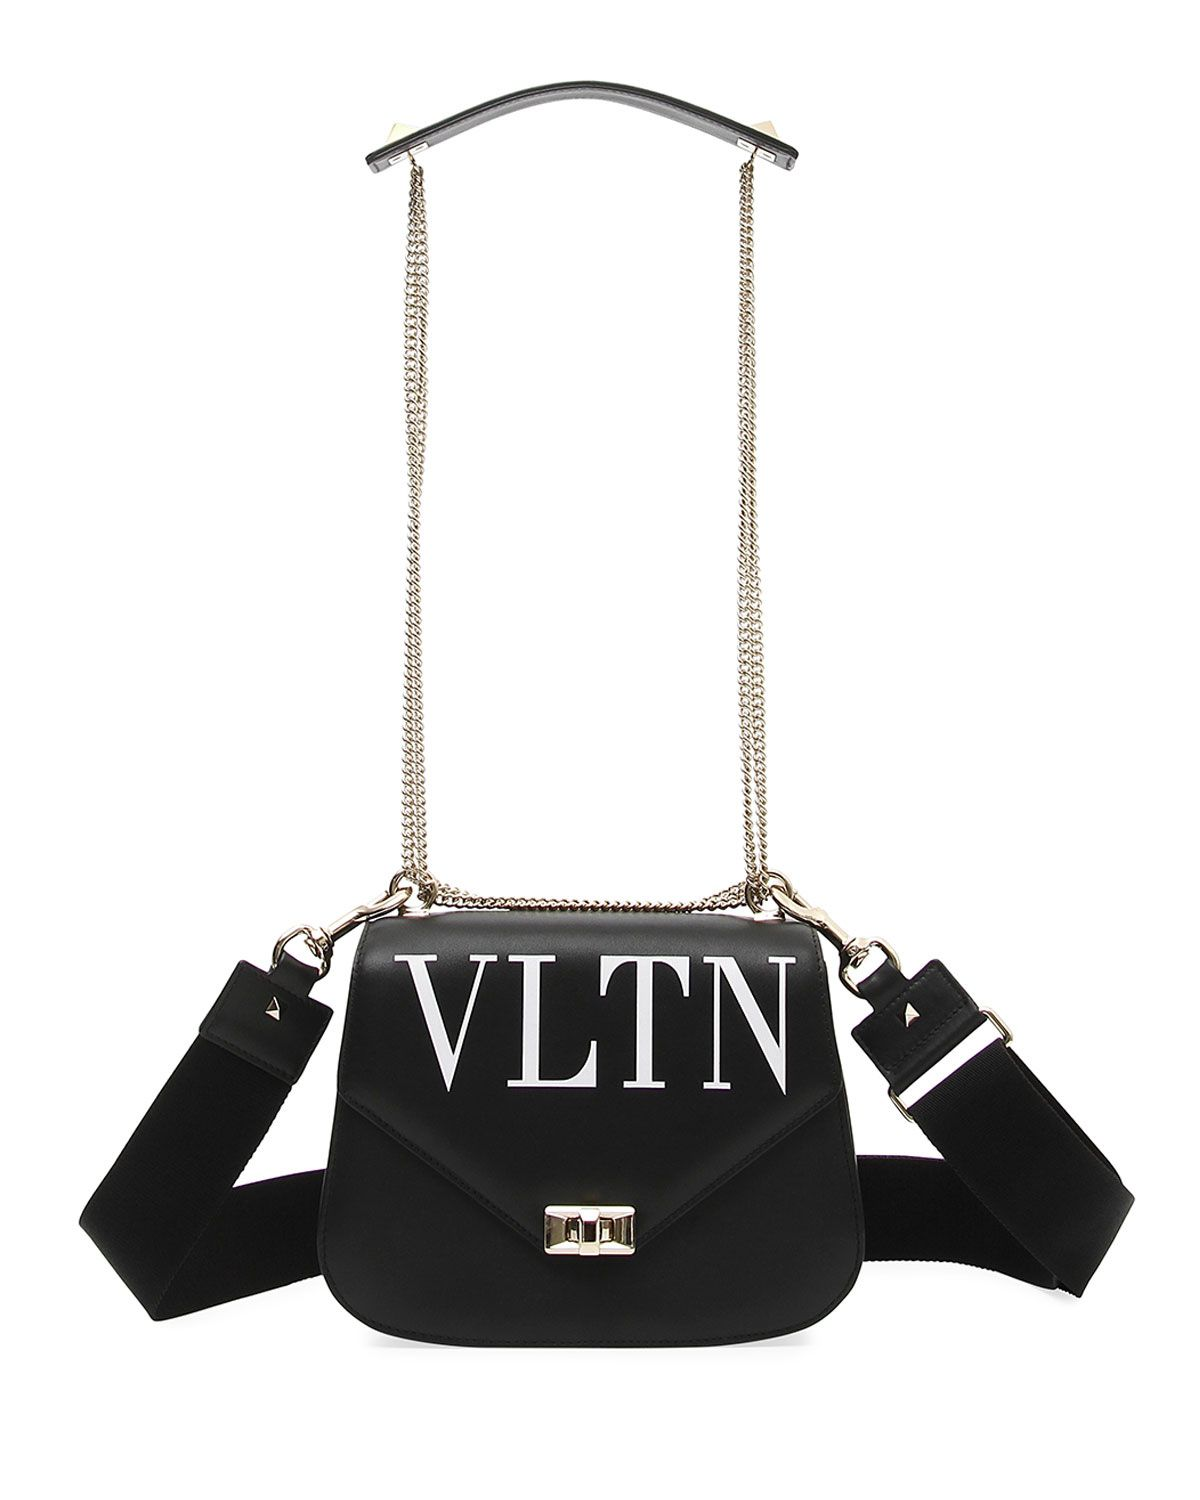 shop-valentino-VLTN-smooth-black-leather-chain-shoulder-bag